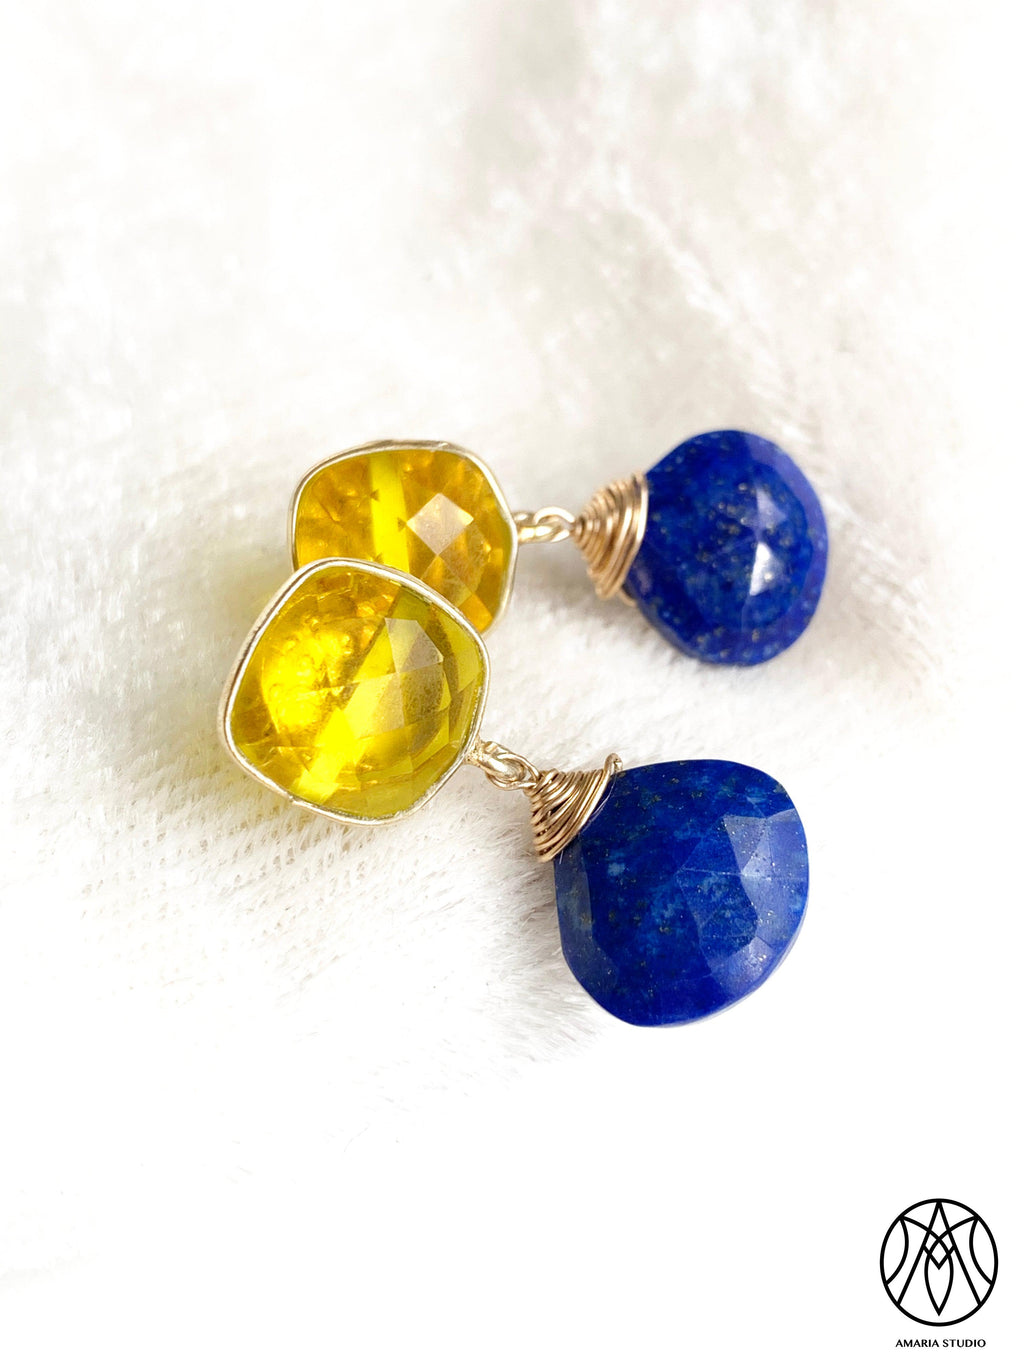 Lemon quartz and lapiz lazuli earrings - Amaria Studio